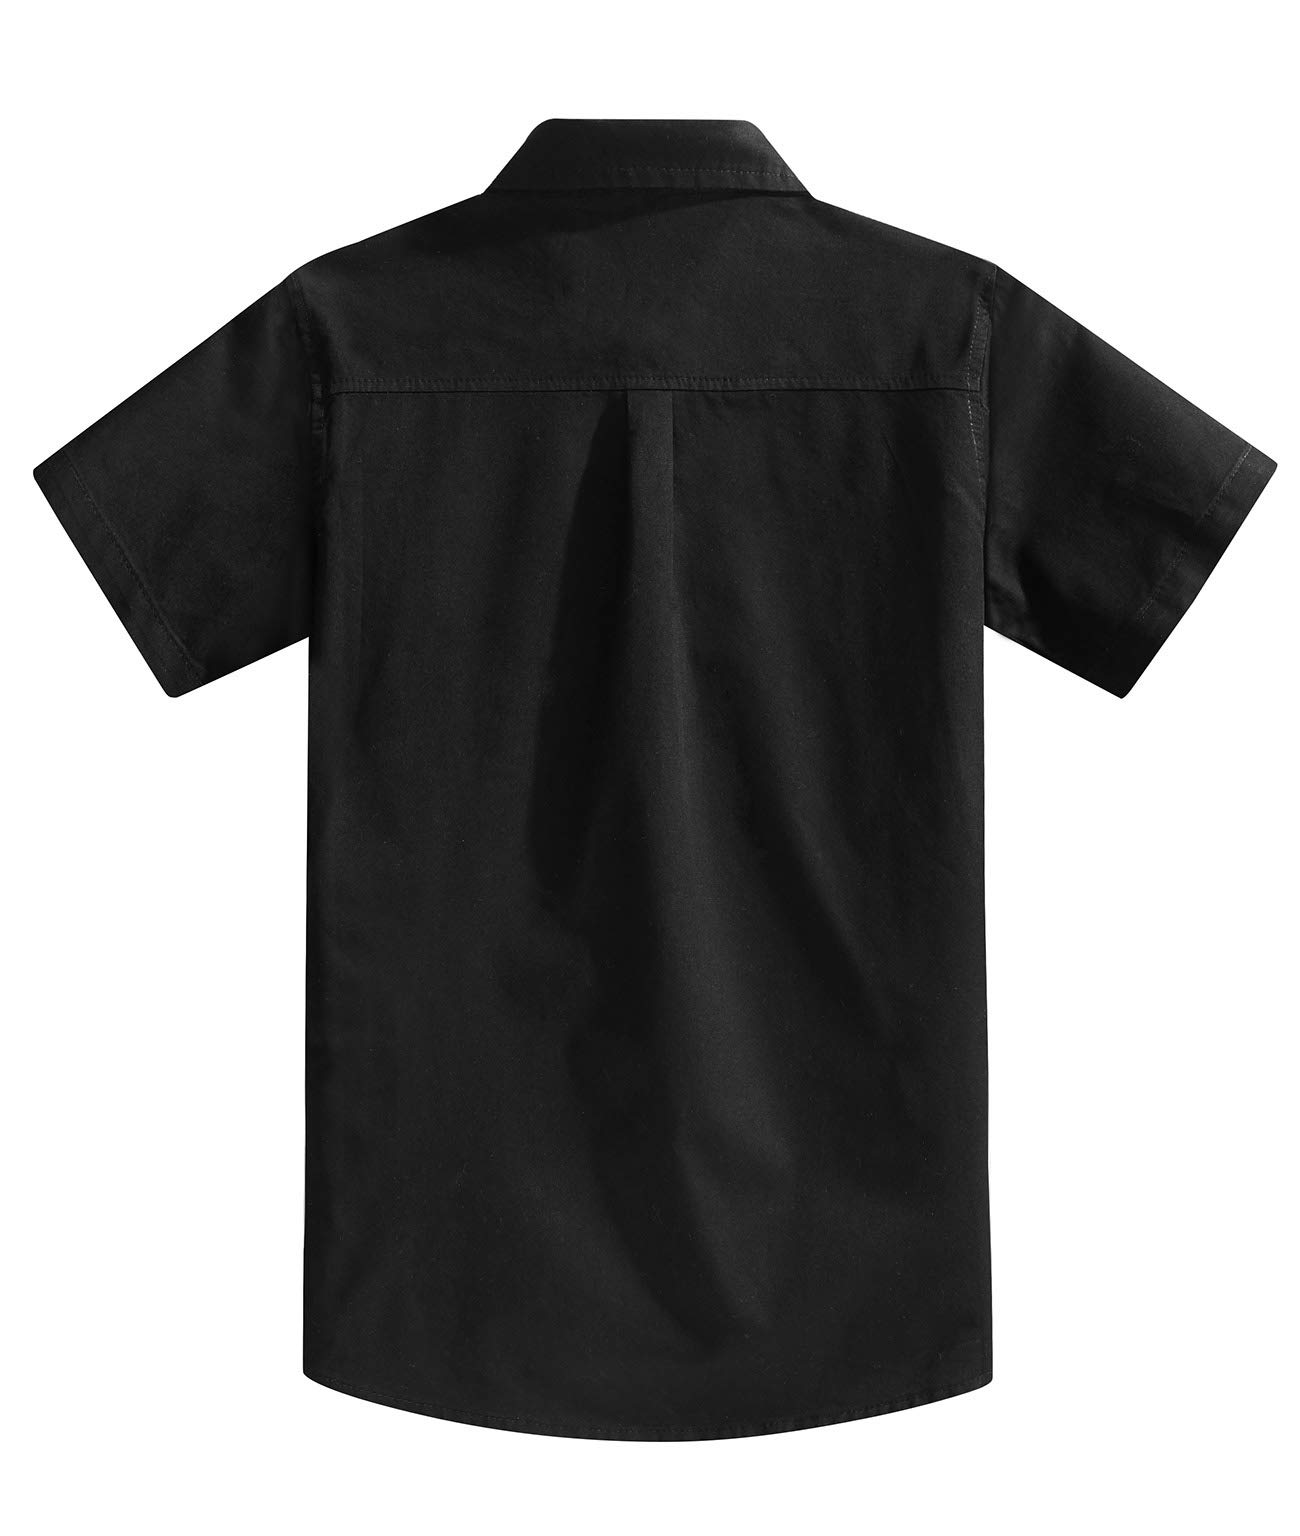 Spring&Gege Boys' Short Sleeve Solid Formal Cotton Twill Dress Shirts Black 5-6 Years by Spring&Gege (Image #2)